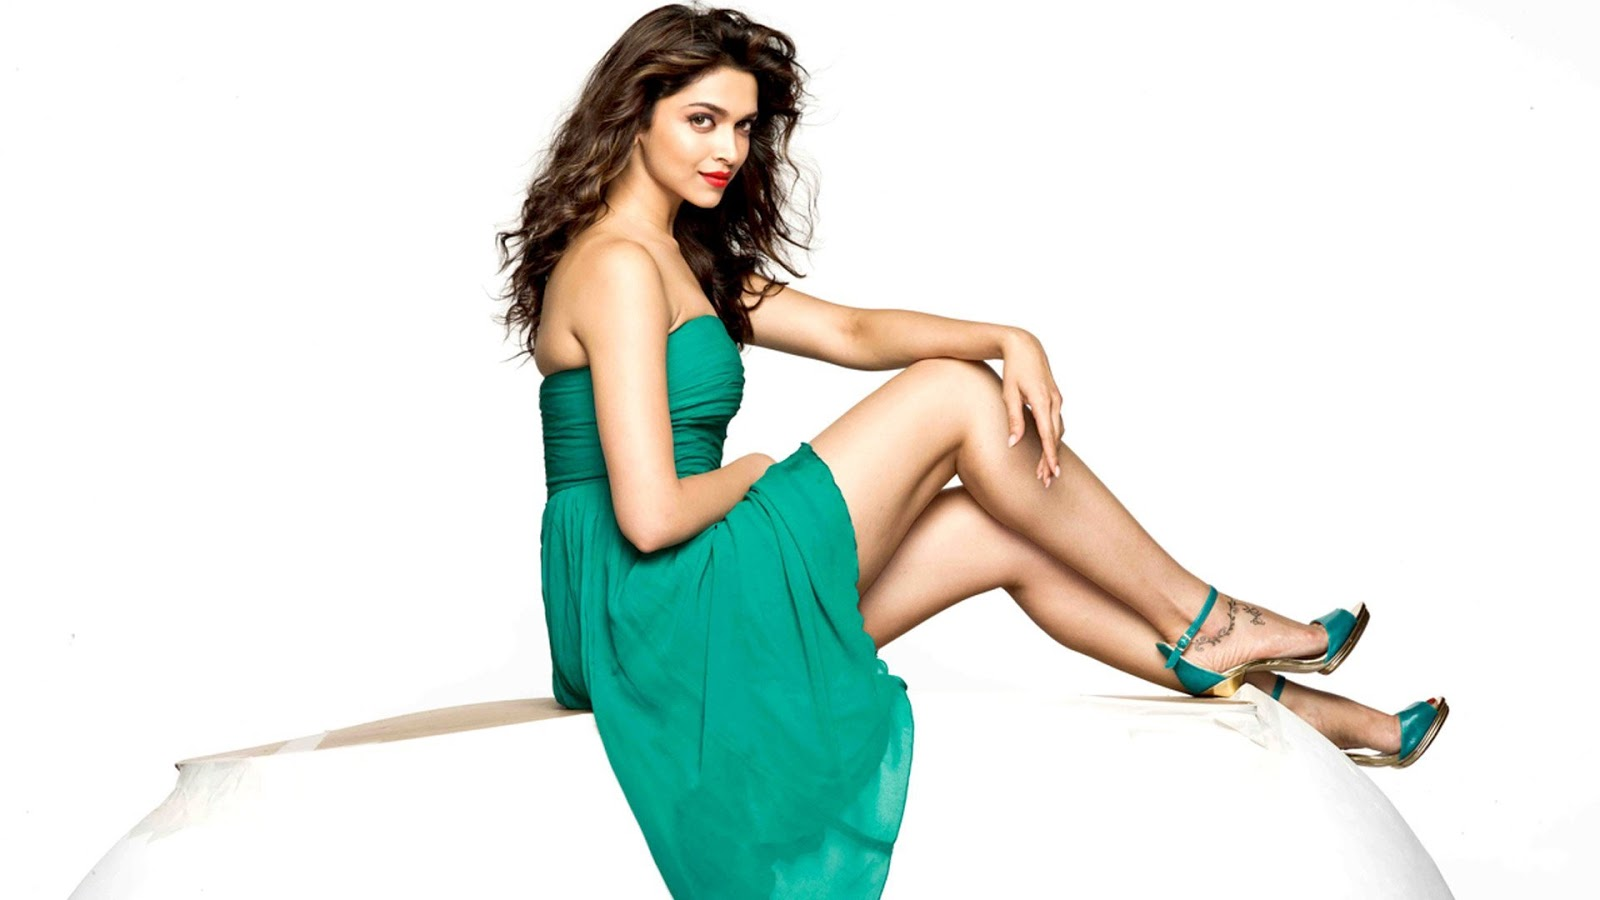 deepika padukone wallpapers 2016 | free wallpapers 2016